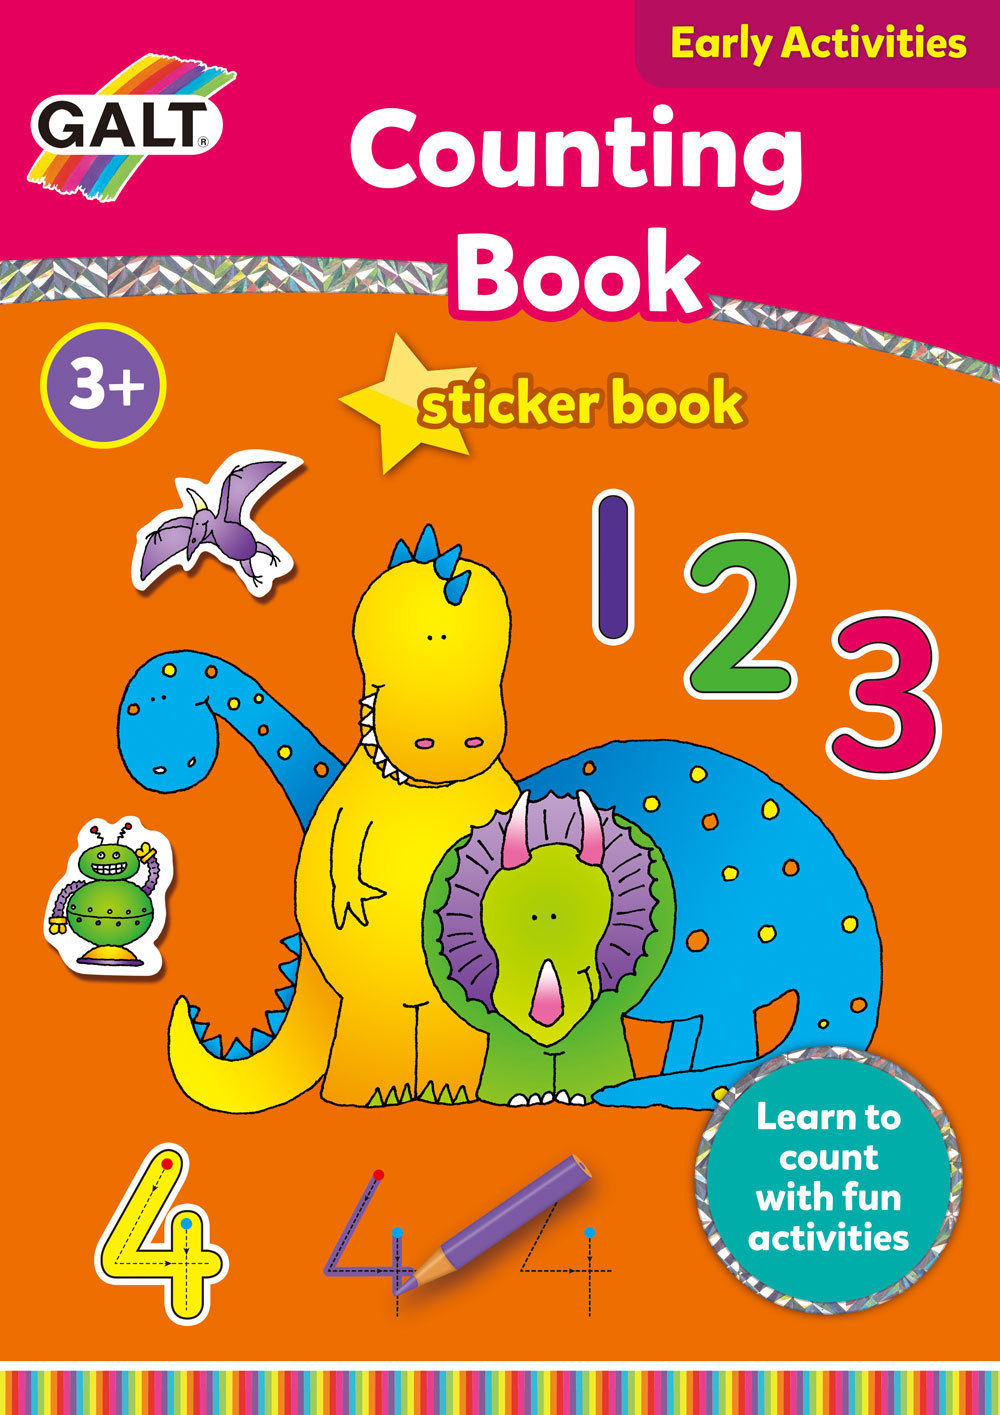 Counting Sticker Book - by Galt image